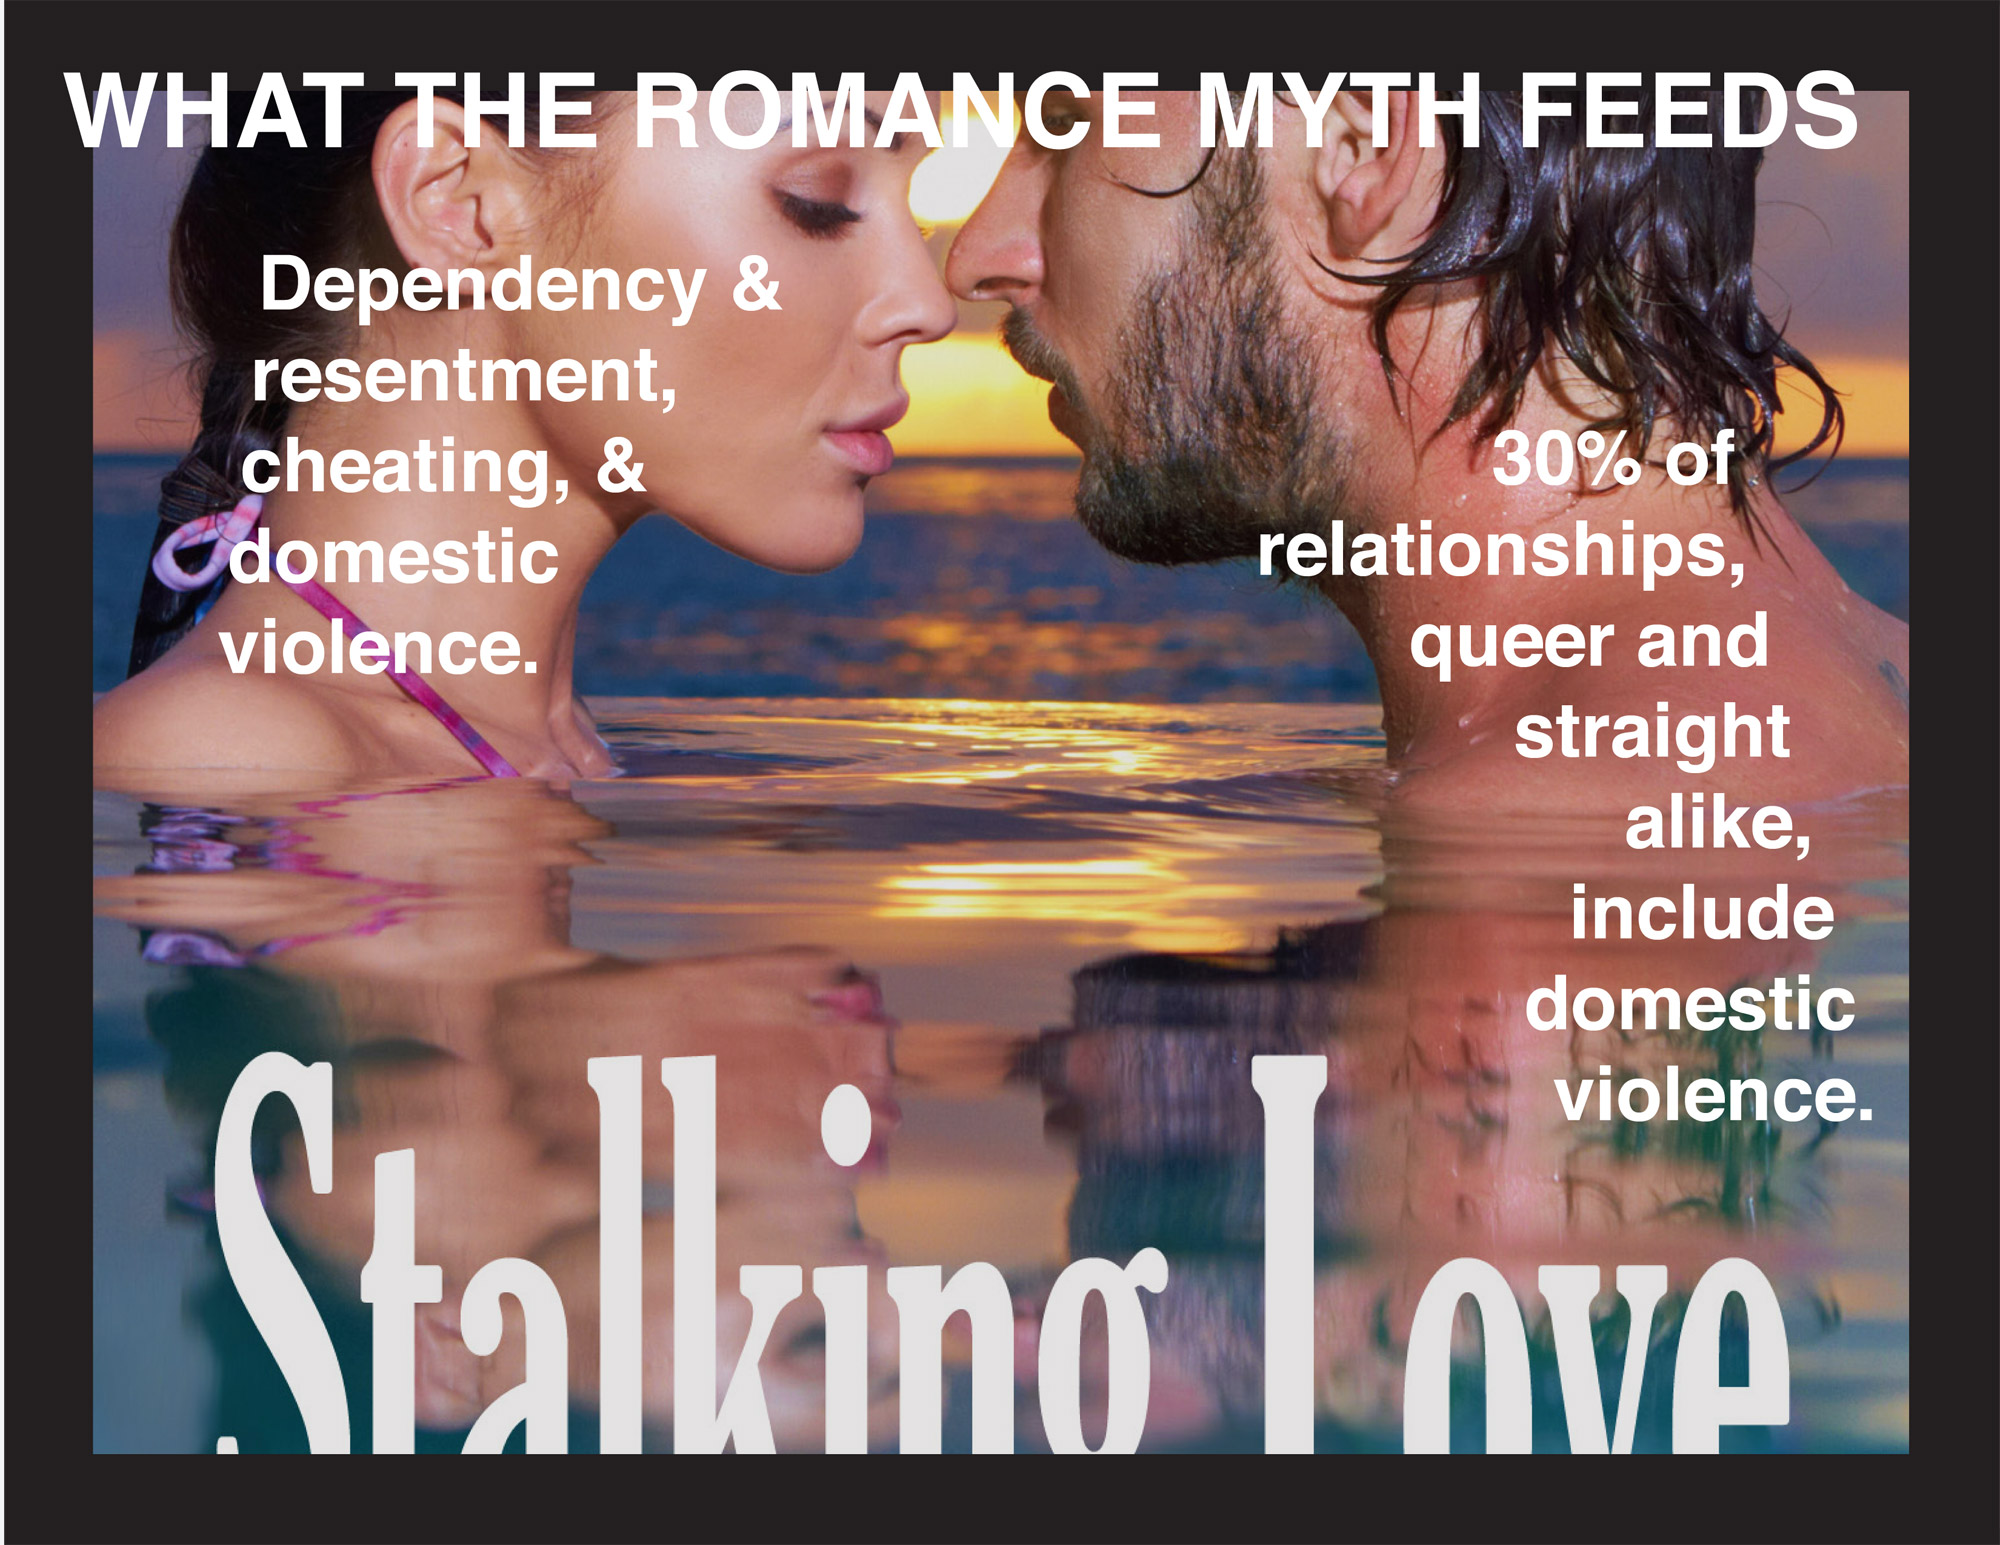 Image of cis heterosexual couple in sunset with text reading 'What the romance myth feeds - dependency and resentment, cheating, and domestic violence, 30 percent of relationships, queer and straight alike, include domestic violence'